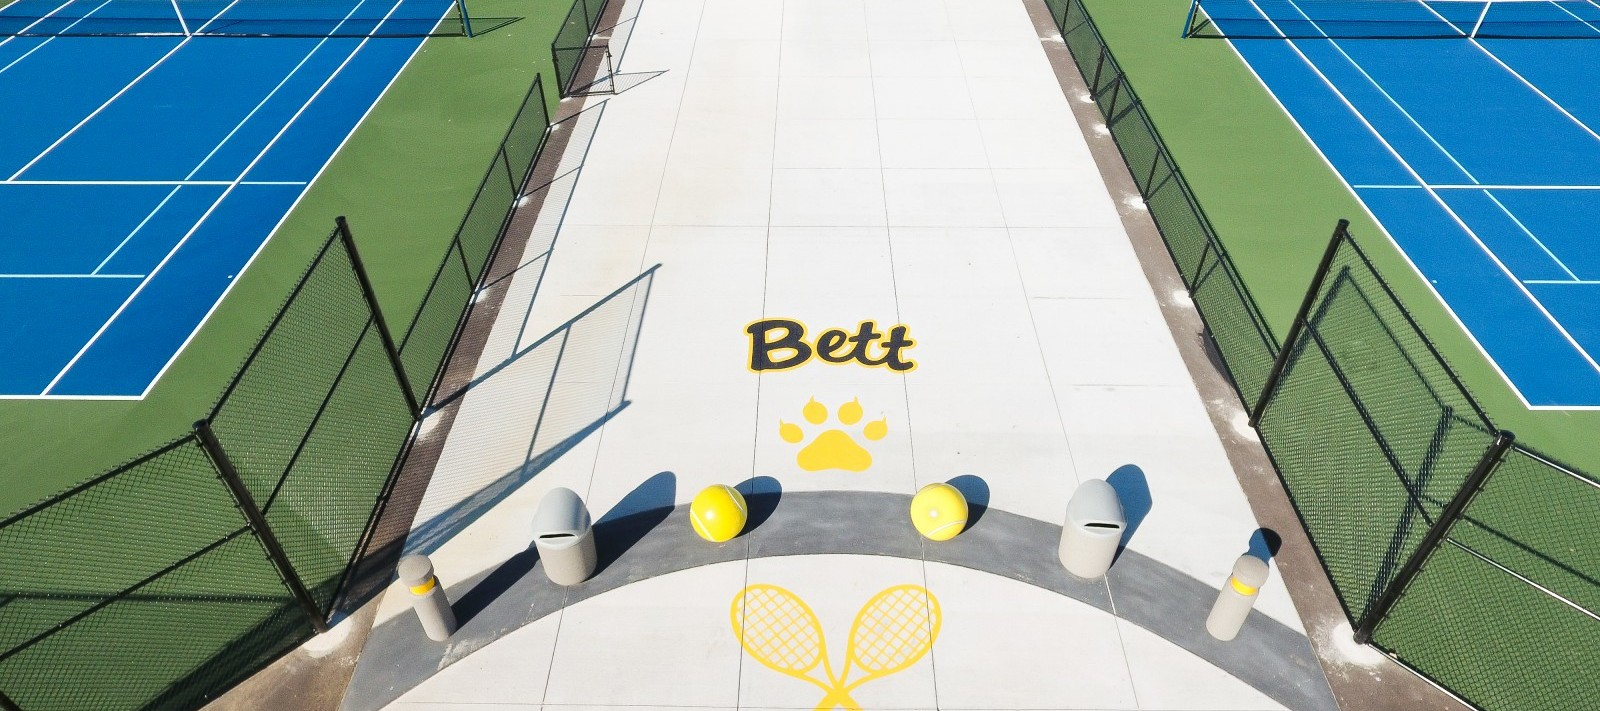 Bettendorf tennis courts entrance